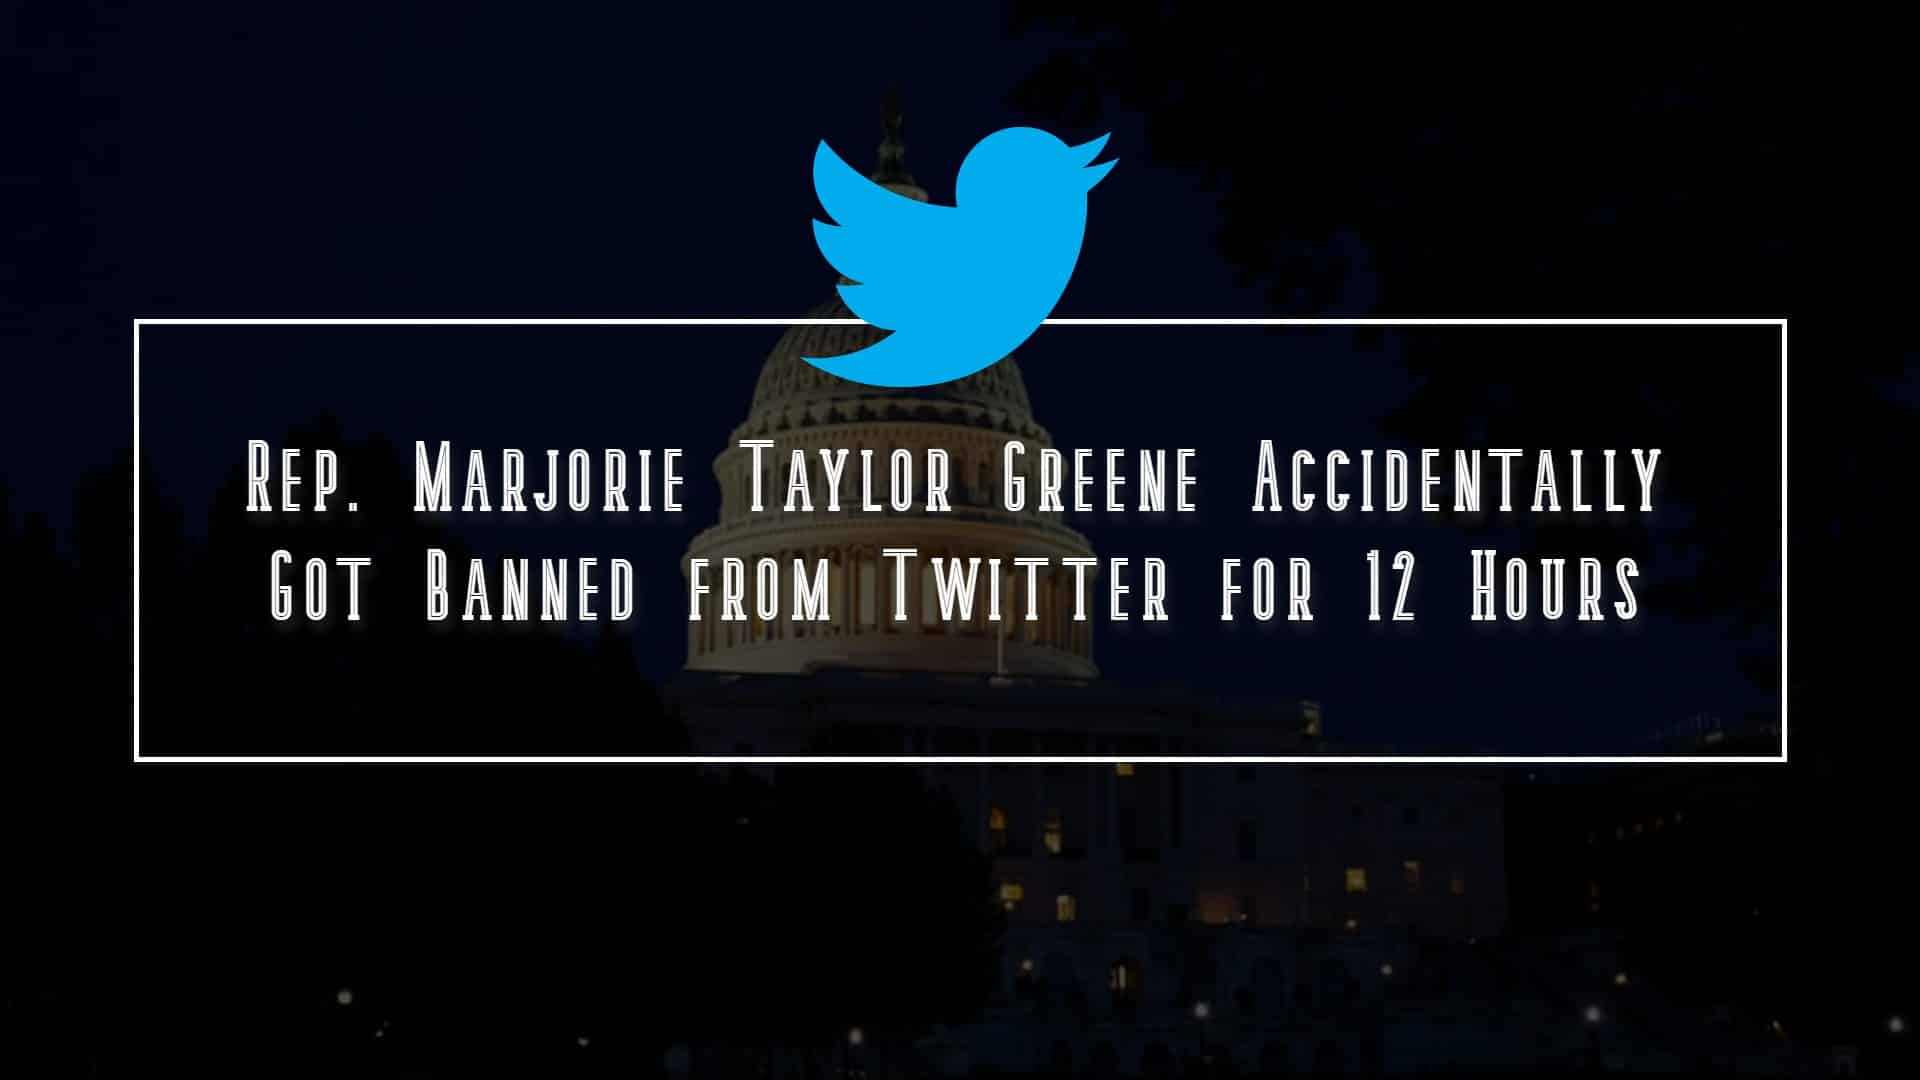 Rep. Marjorie Taylor Greene Accidentally Got Banned from Twitter for 12 Hours